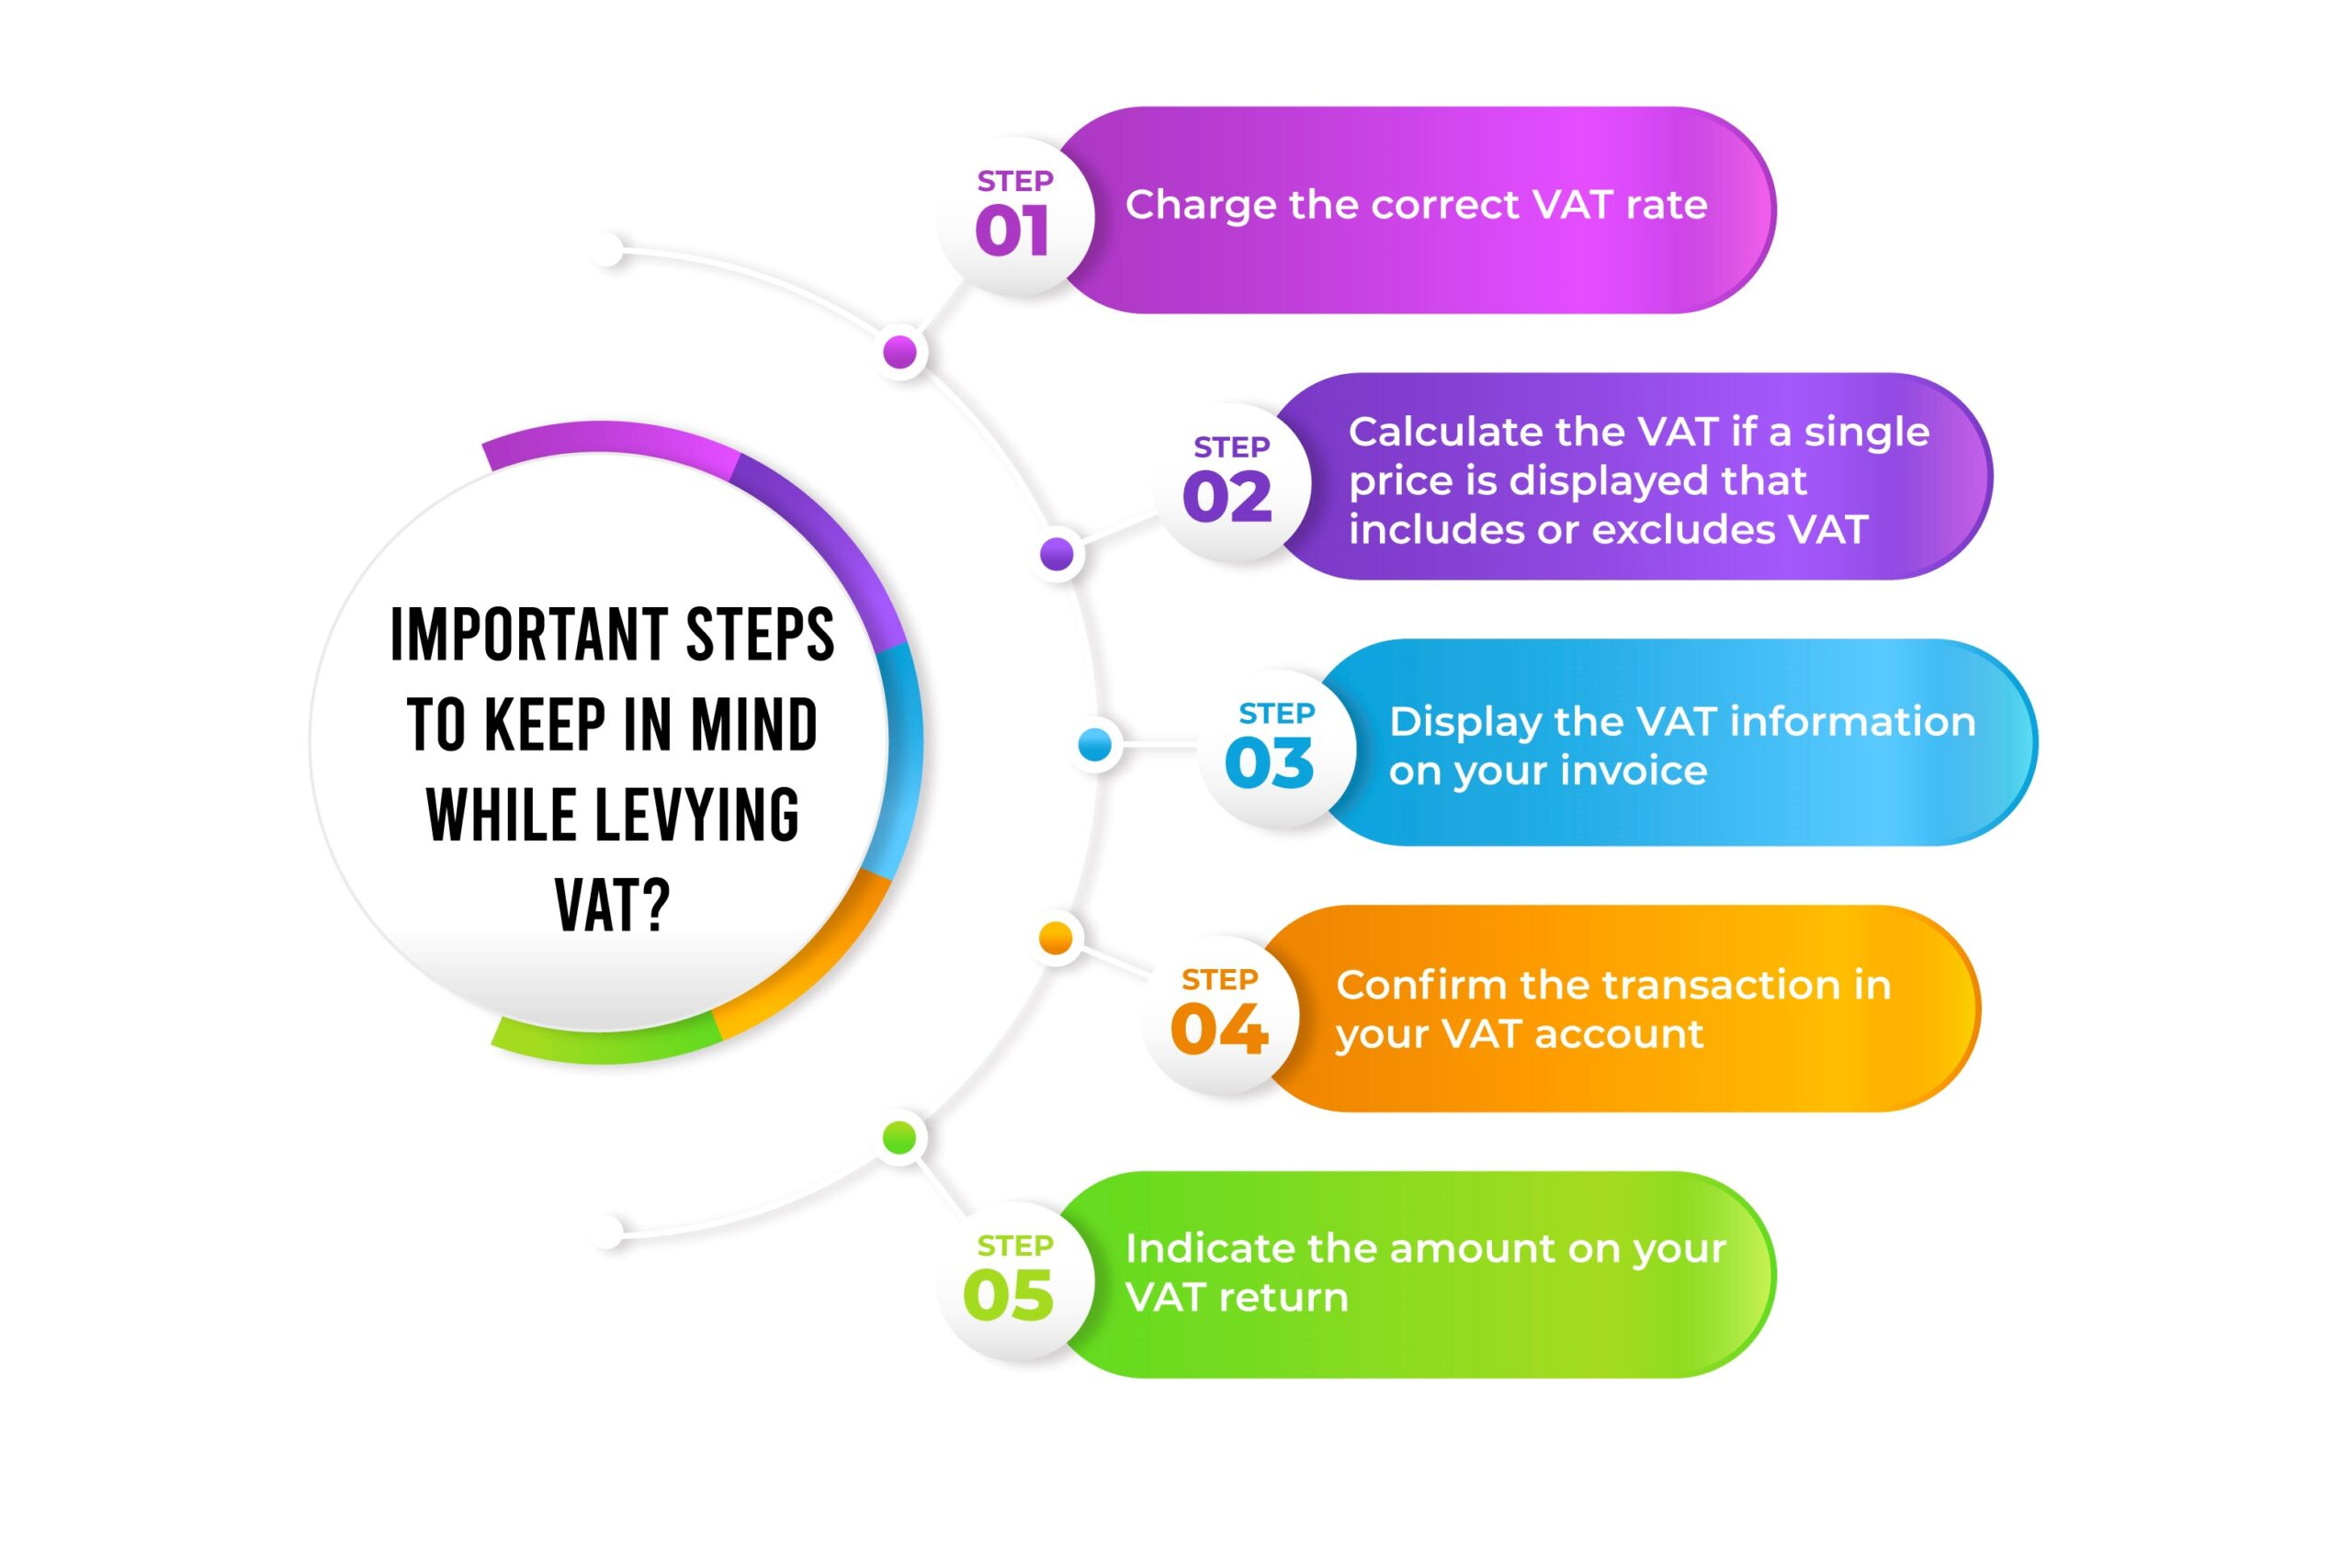 Steps To keep in mind while levying VAT